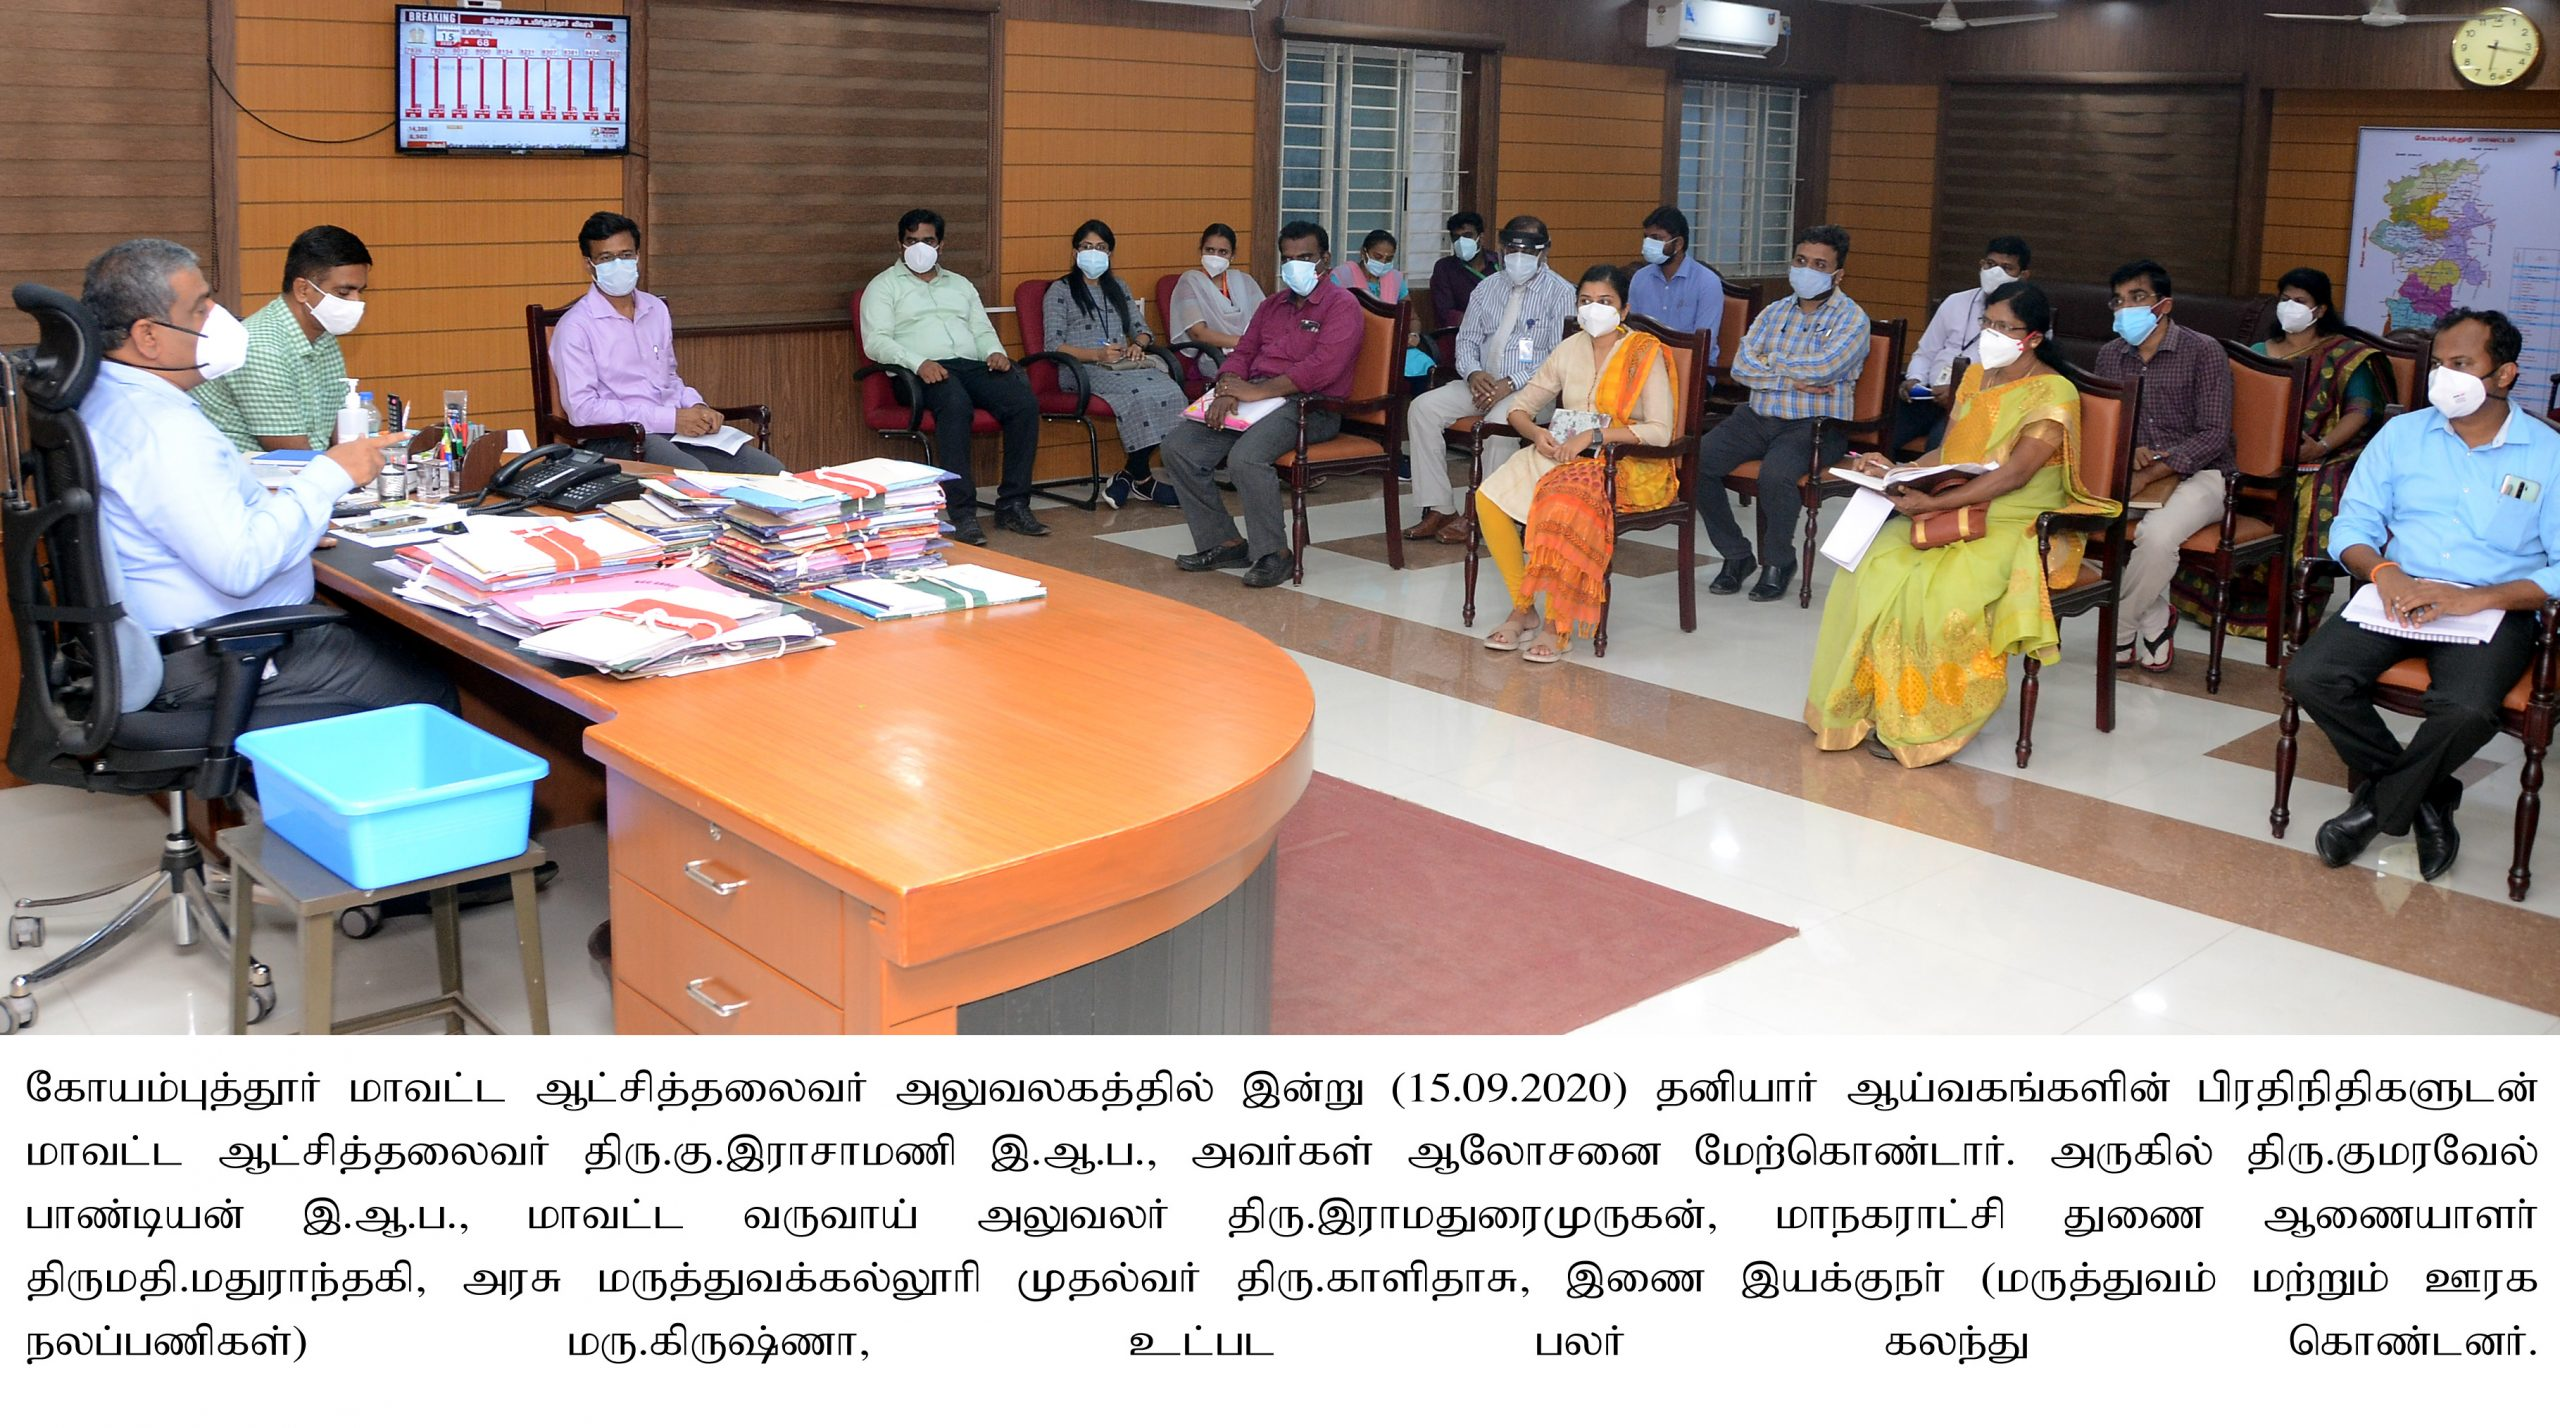 District Collector conducted a meeting with Private Lab representatives